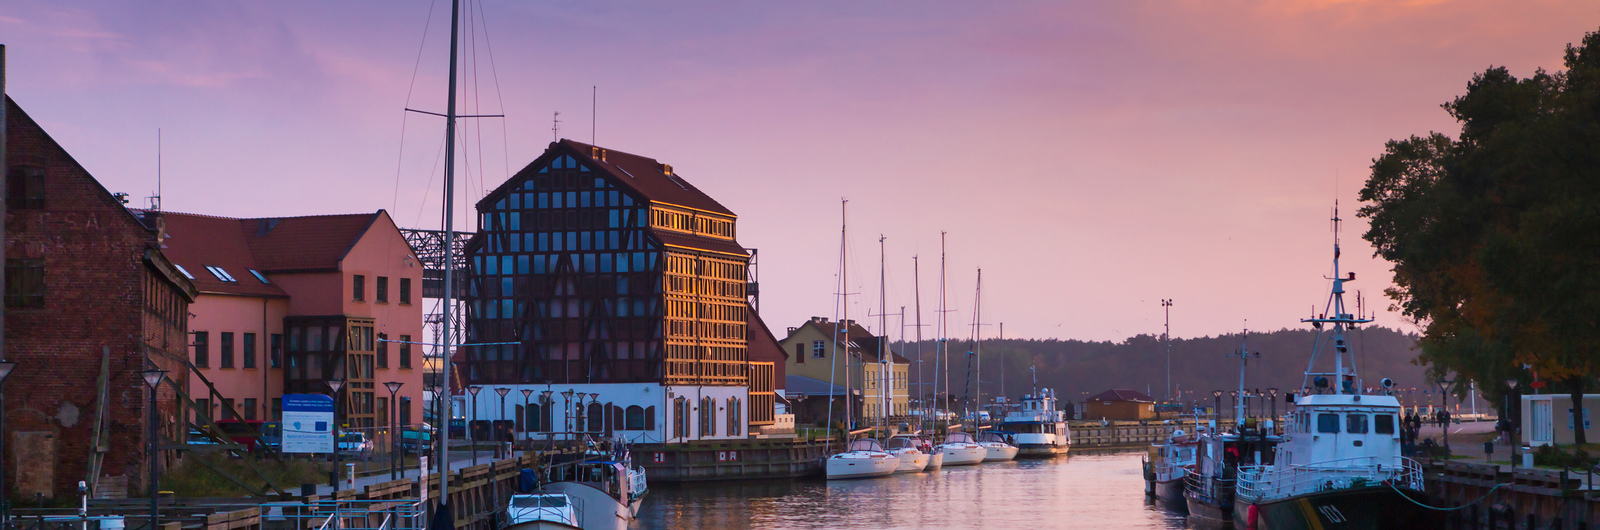 klaipeda city header